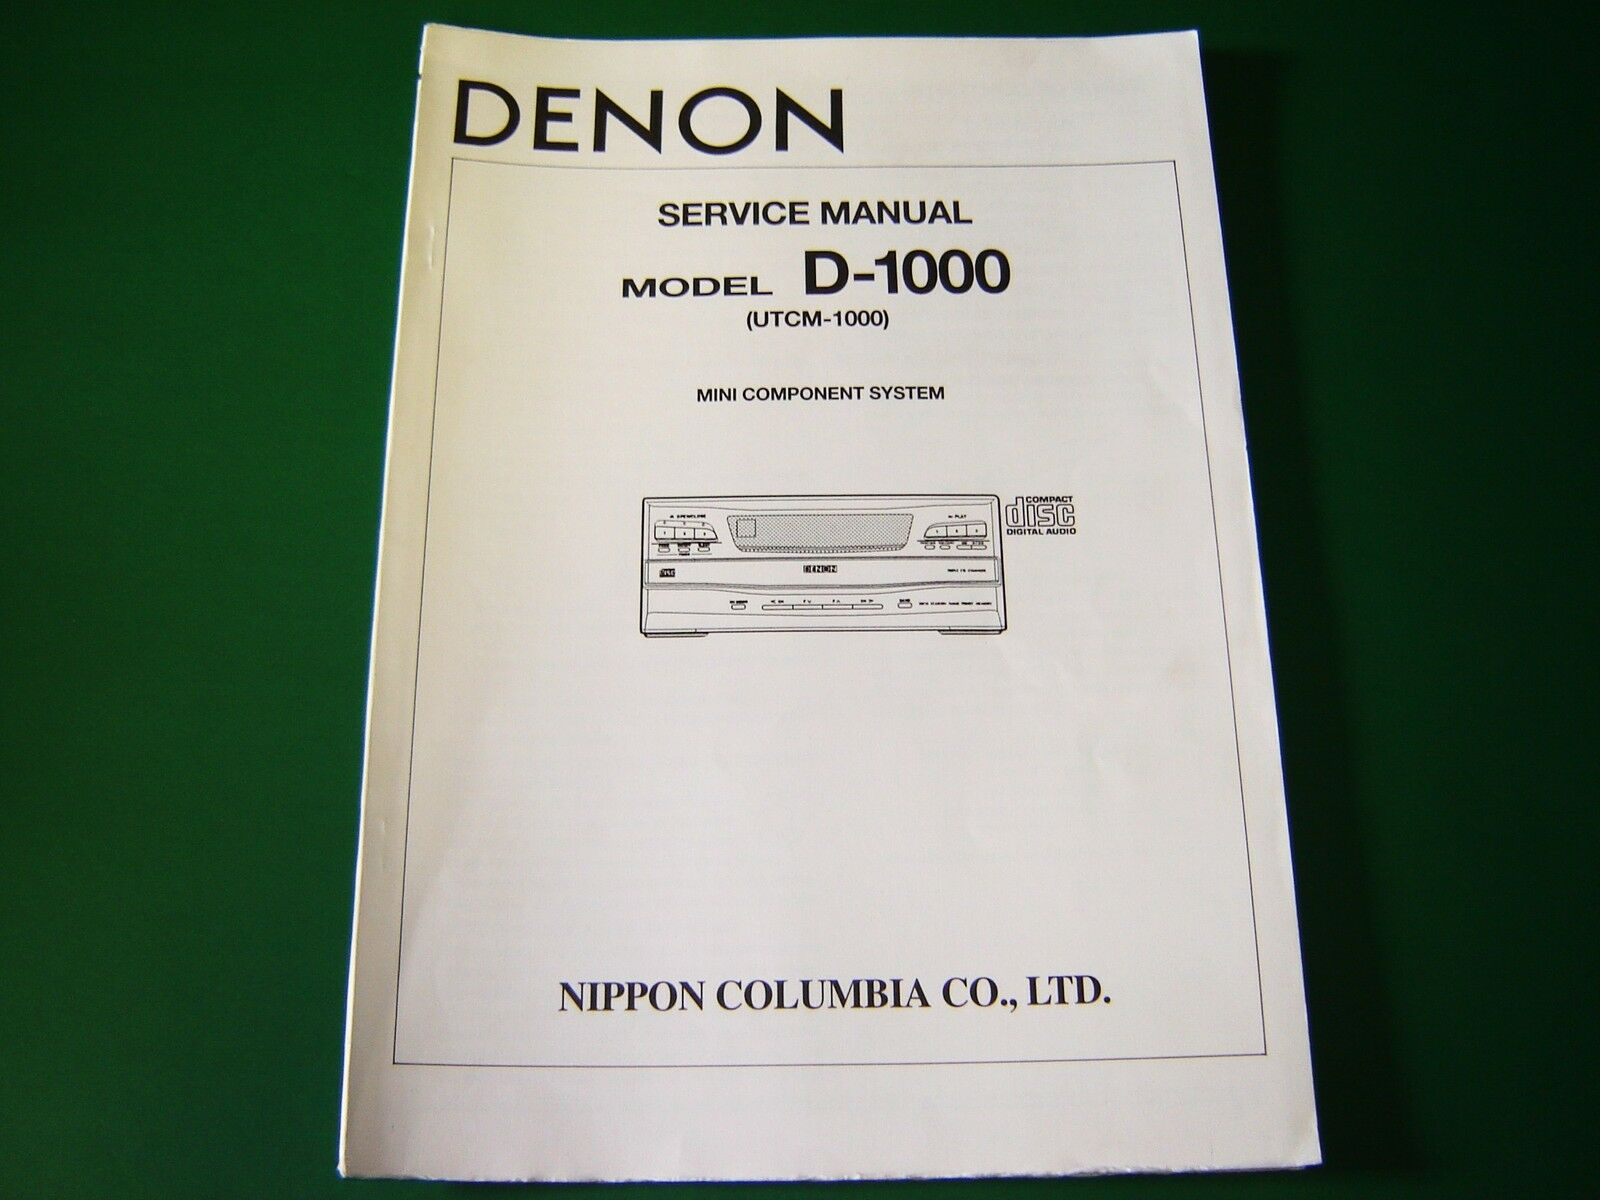 Original Denon D-1000 / UTCM-1000 Service Manual 1 of 1Only 1 available ...